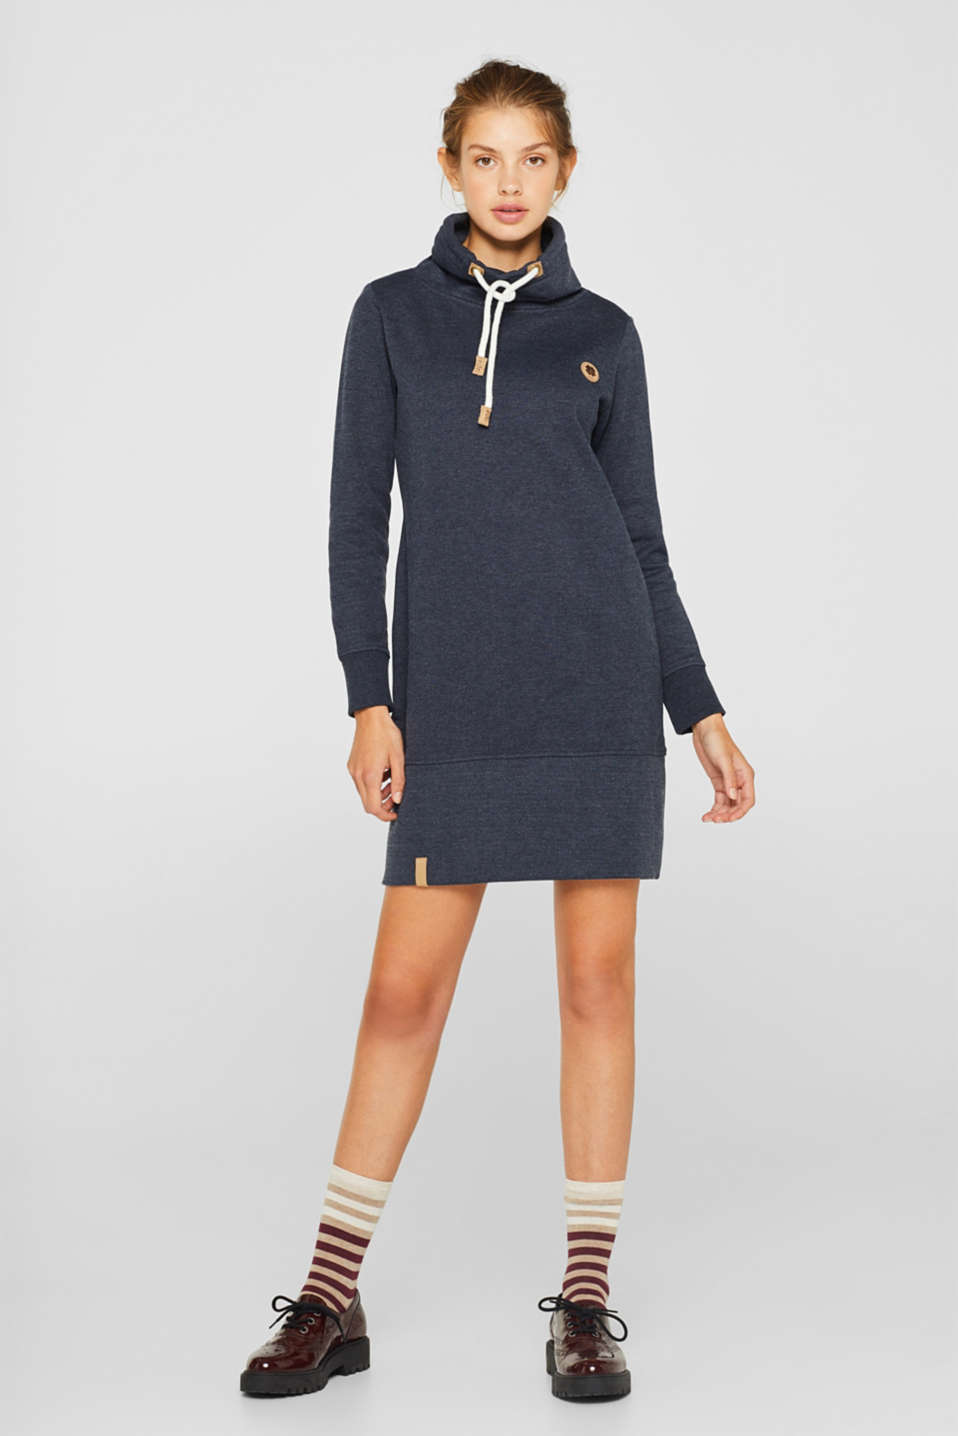 edc - Sweatshirt dress with a drawstring collar